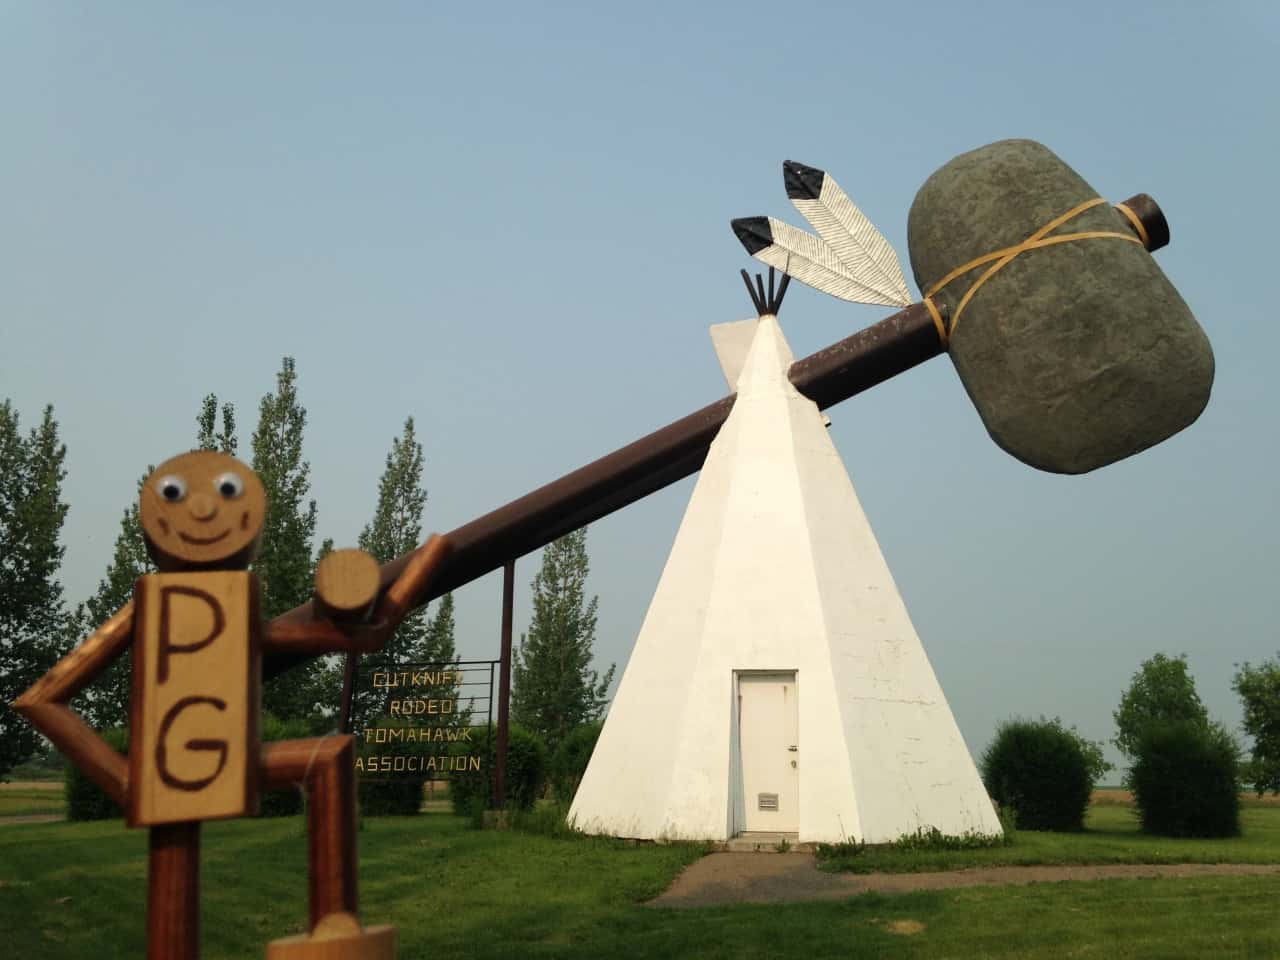 248d9d0b7bbcb106e2de1c11.jpg - Cut Knife, SK - Across Canada in search of #BIGselfies trip 2014<br />The worlds largest Tomahawk. I liked Cut Knife, a tiny town with a big personality and some awesome signage.